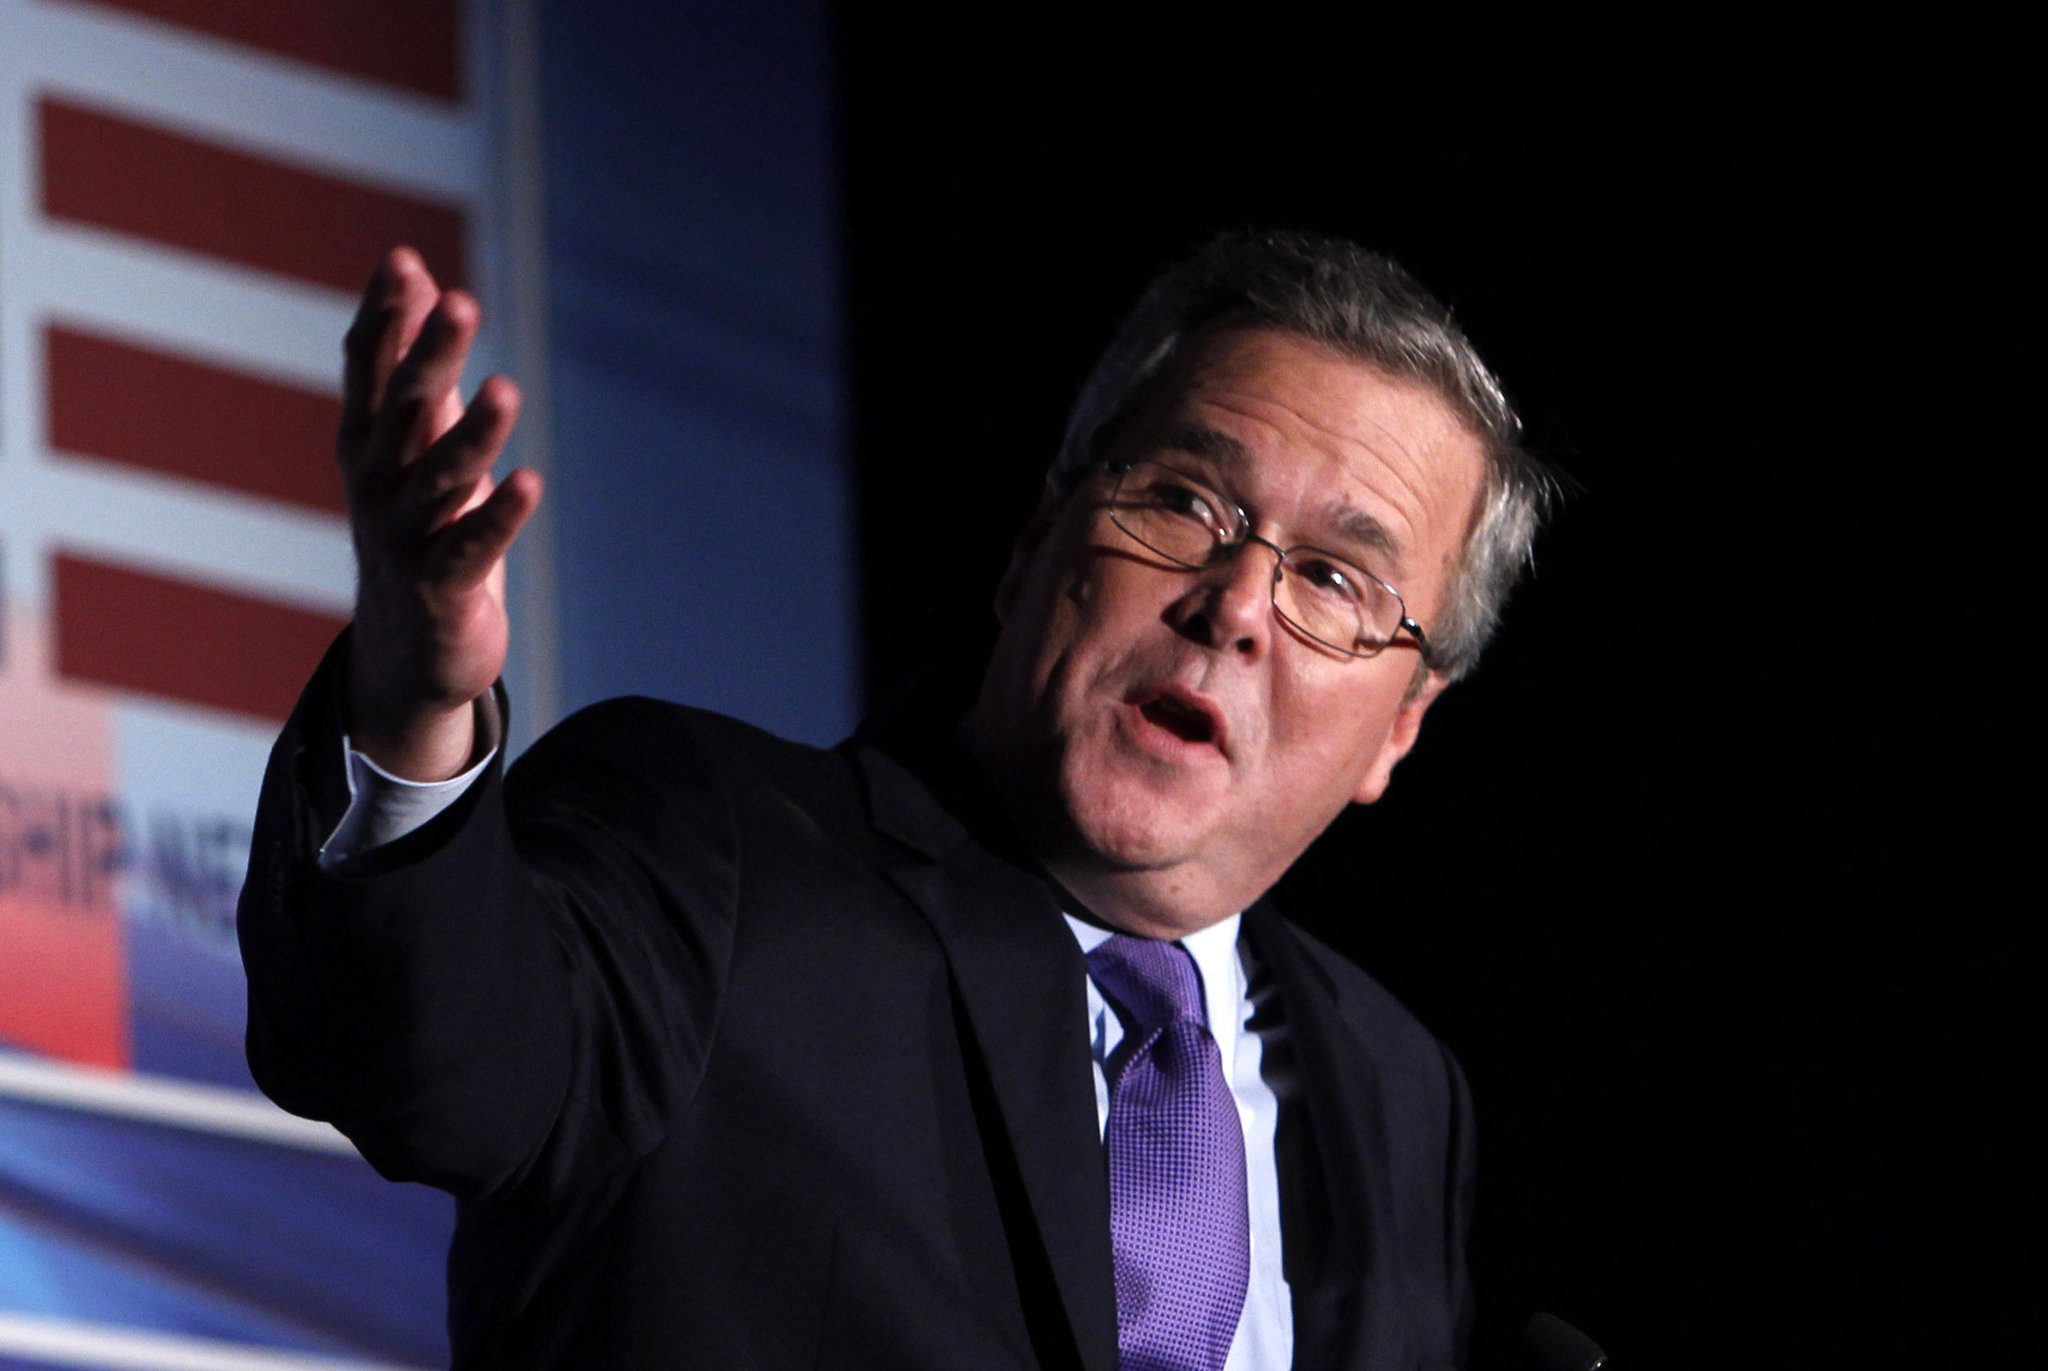 Jeb Bush Quotes Jeb Bush Social Security Meanstesting 'ought To Be Considered'